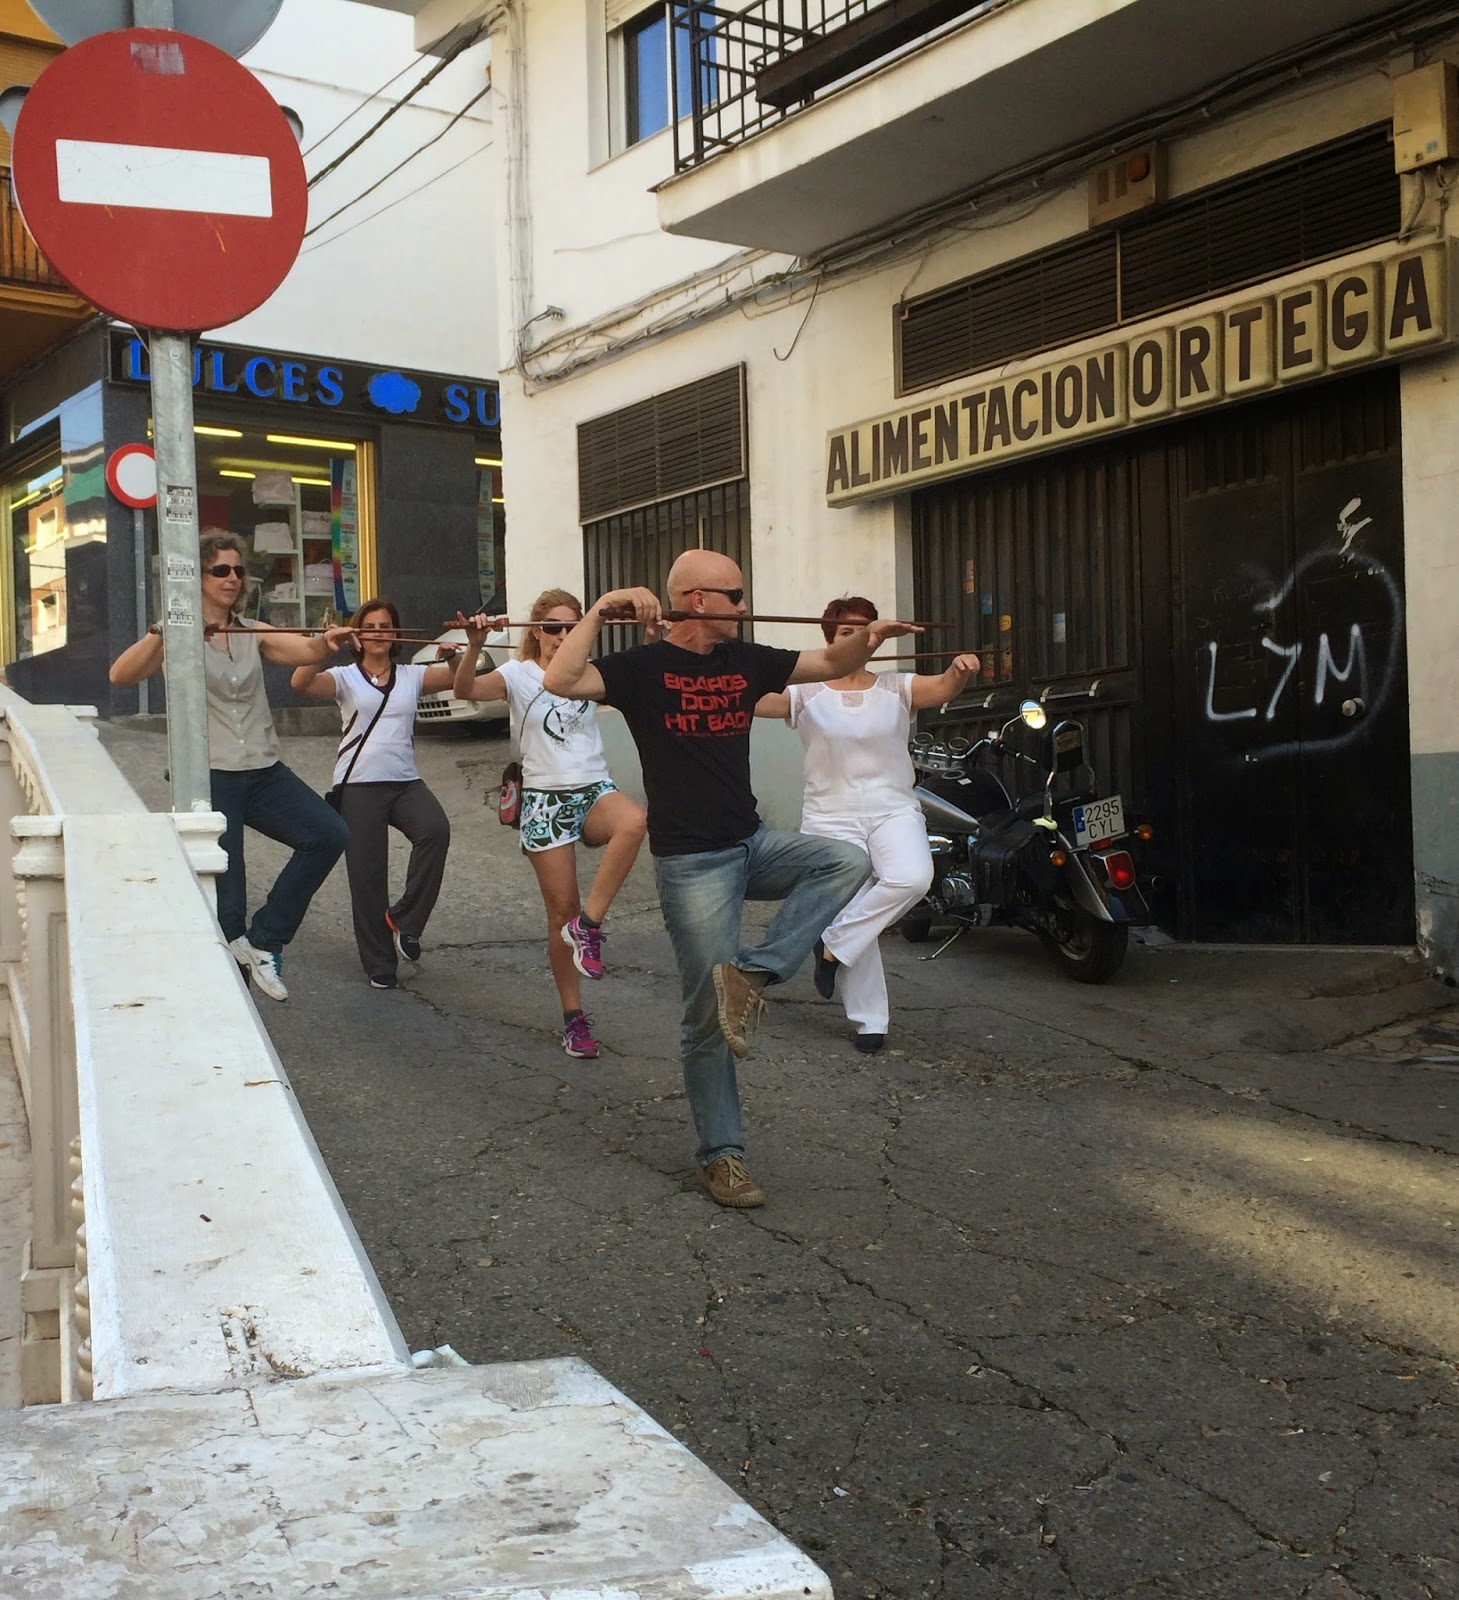 Tai Chi on the streets of Loja with the teapotmonk